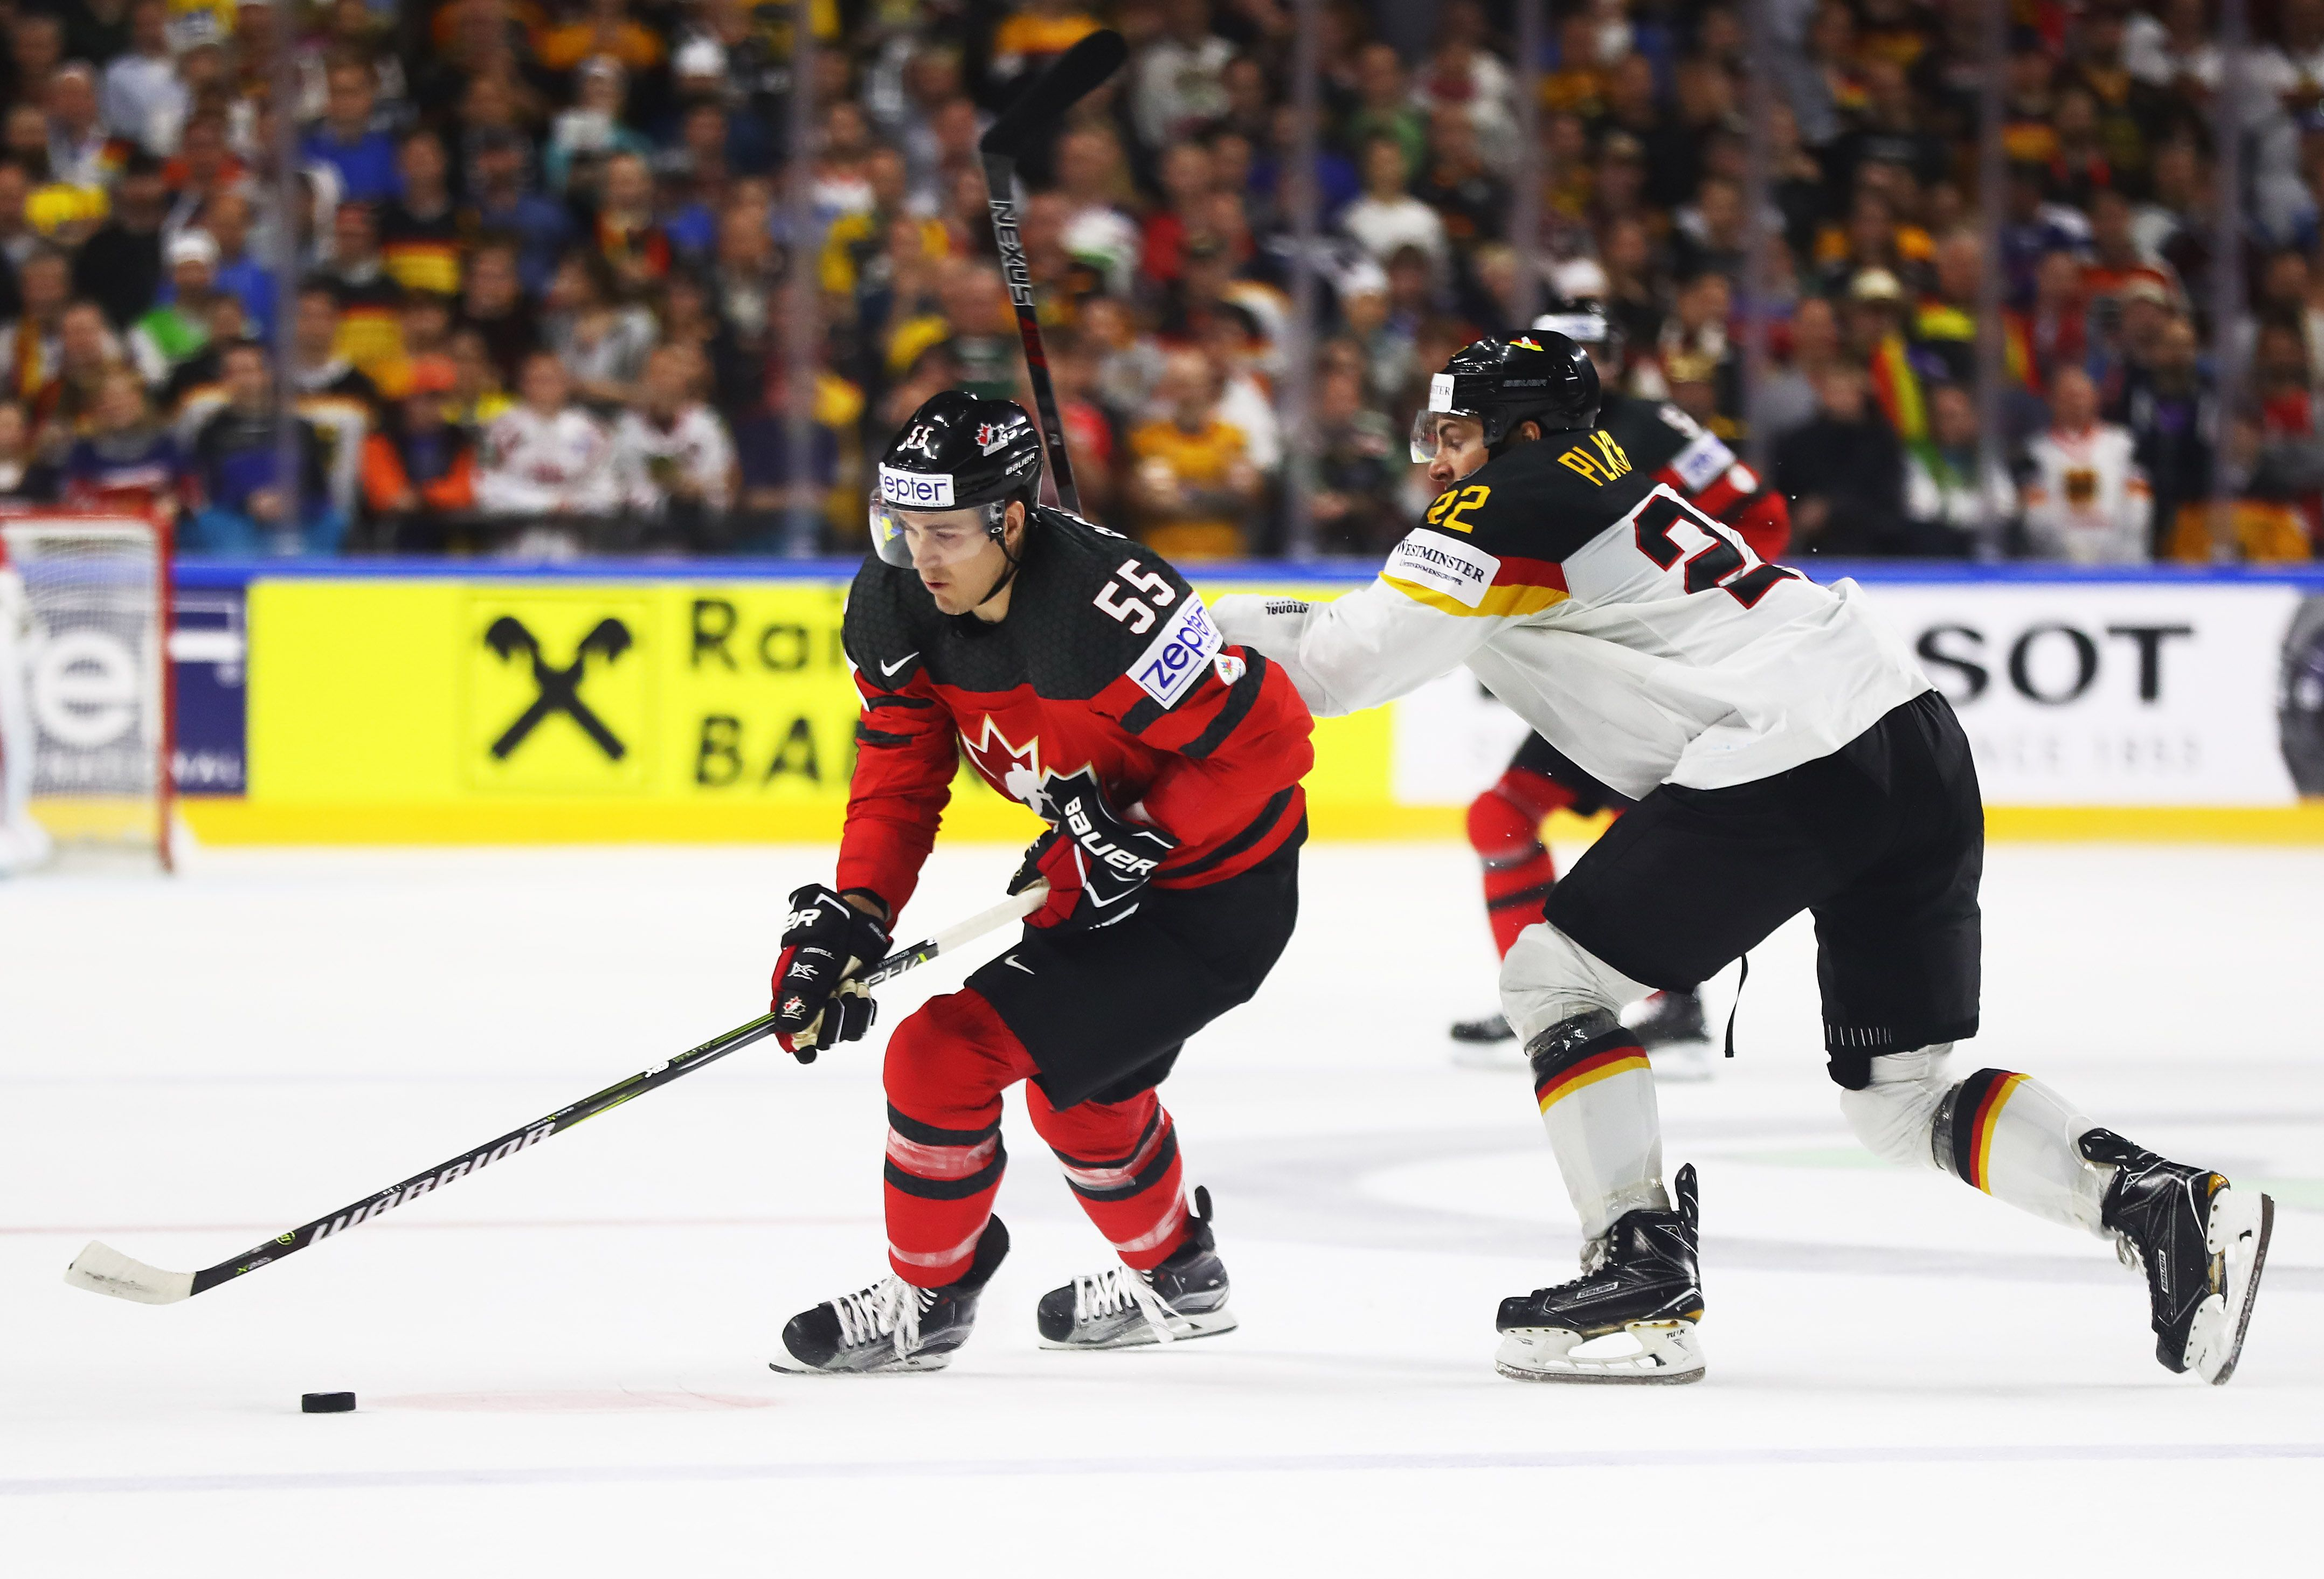 Mark Scheifele Scores Goal And Adds An Assist In Canada S 2 1 Quarterfinal Victory Over Germany At Iihf Men S World Championsh World Championship Germany Marks